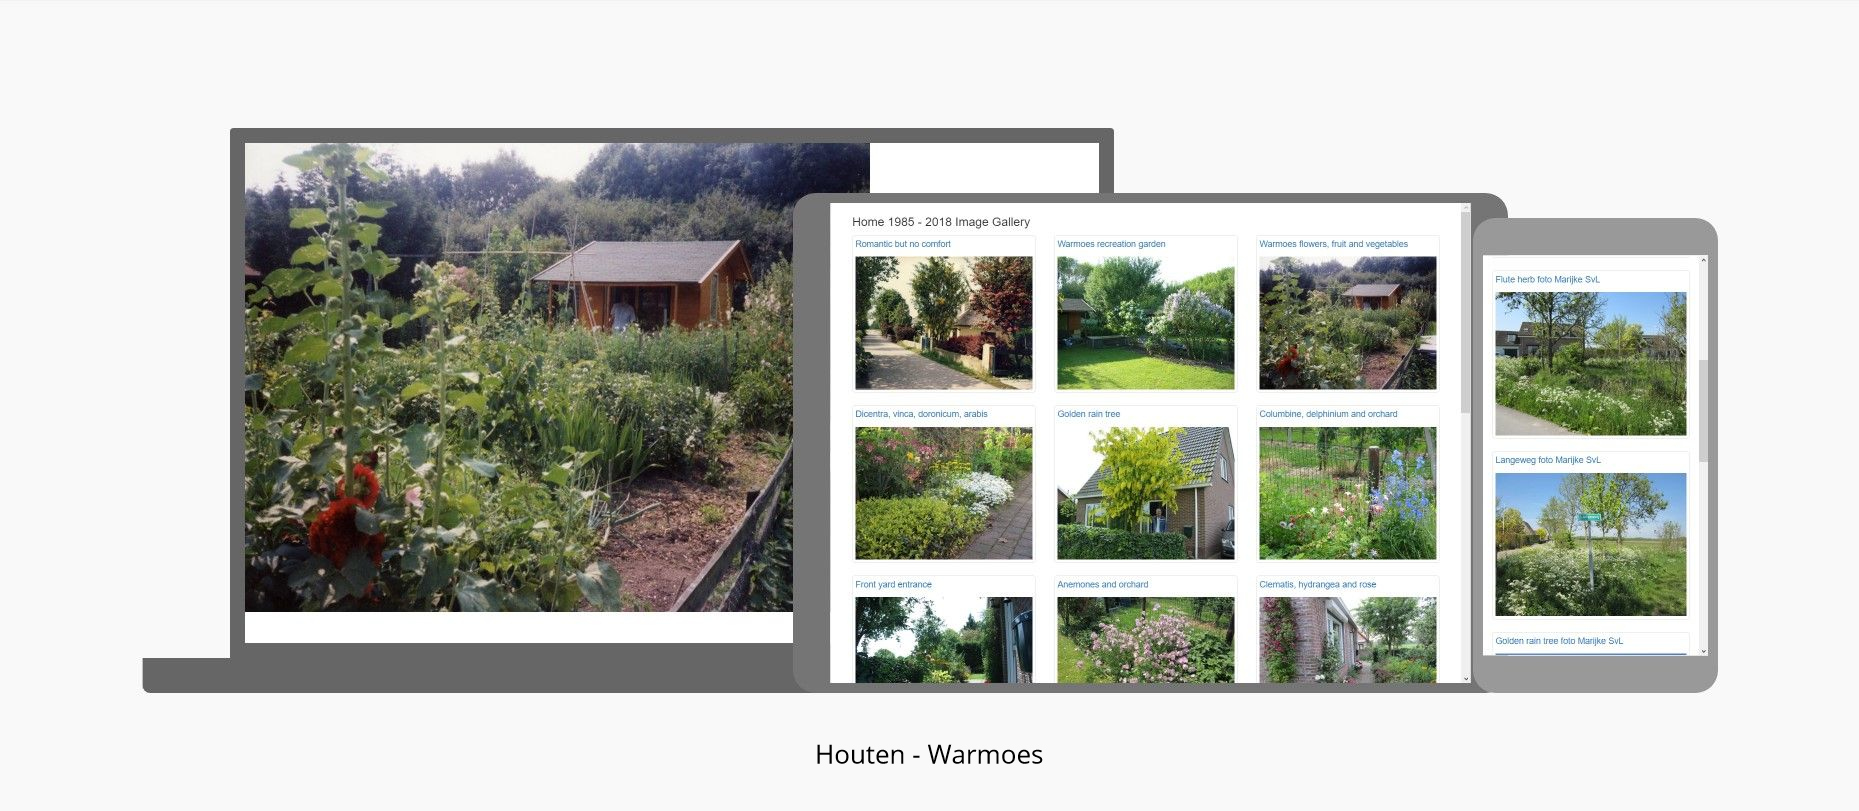 Warmoes - Home - Spring